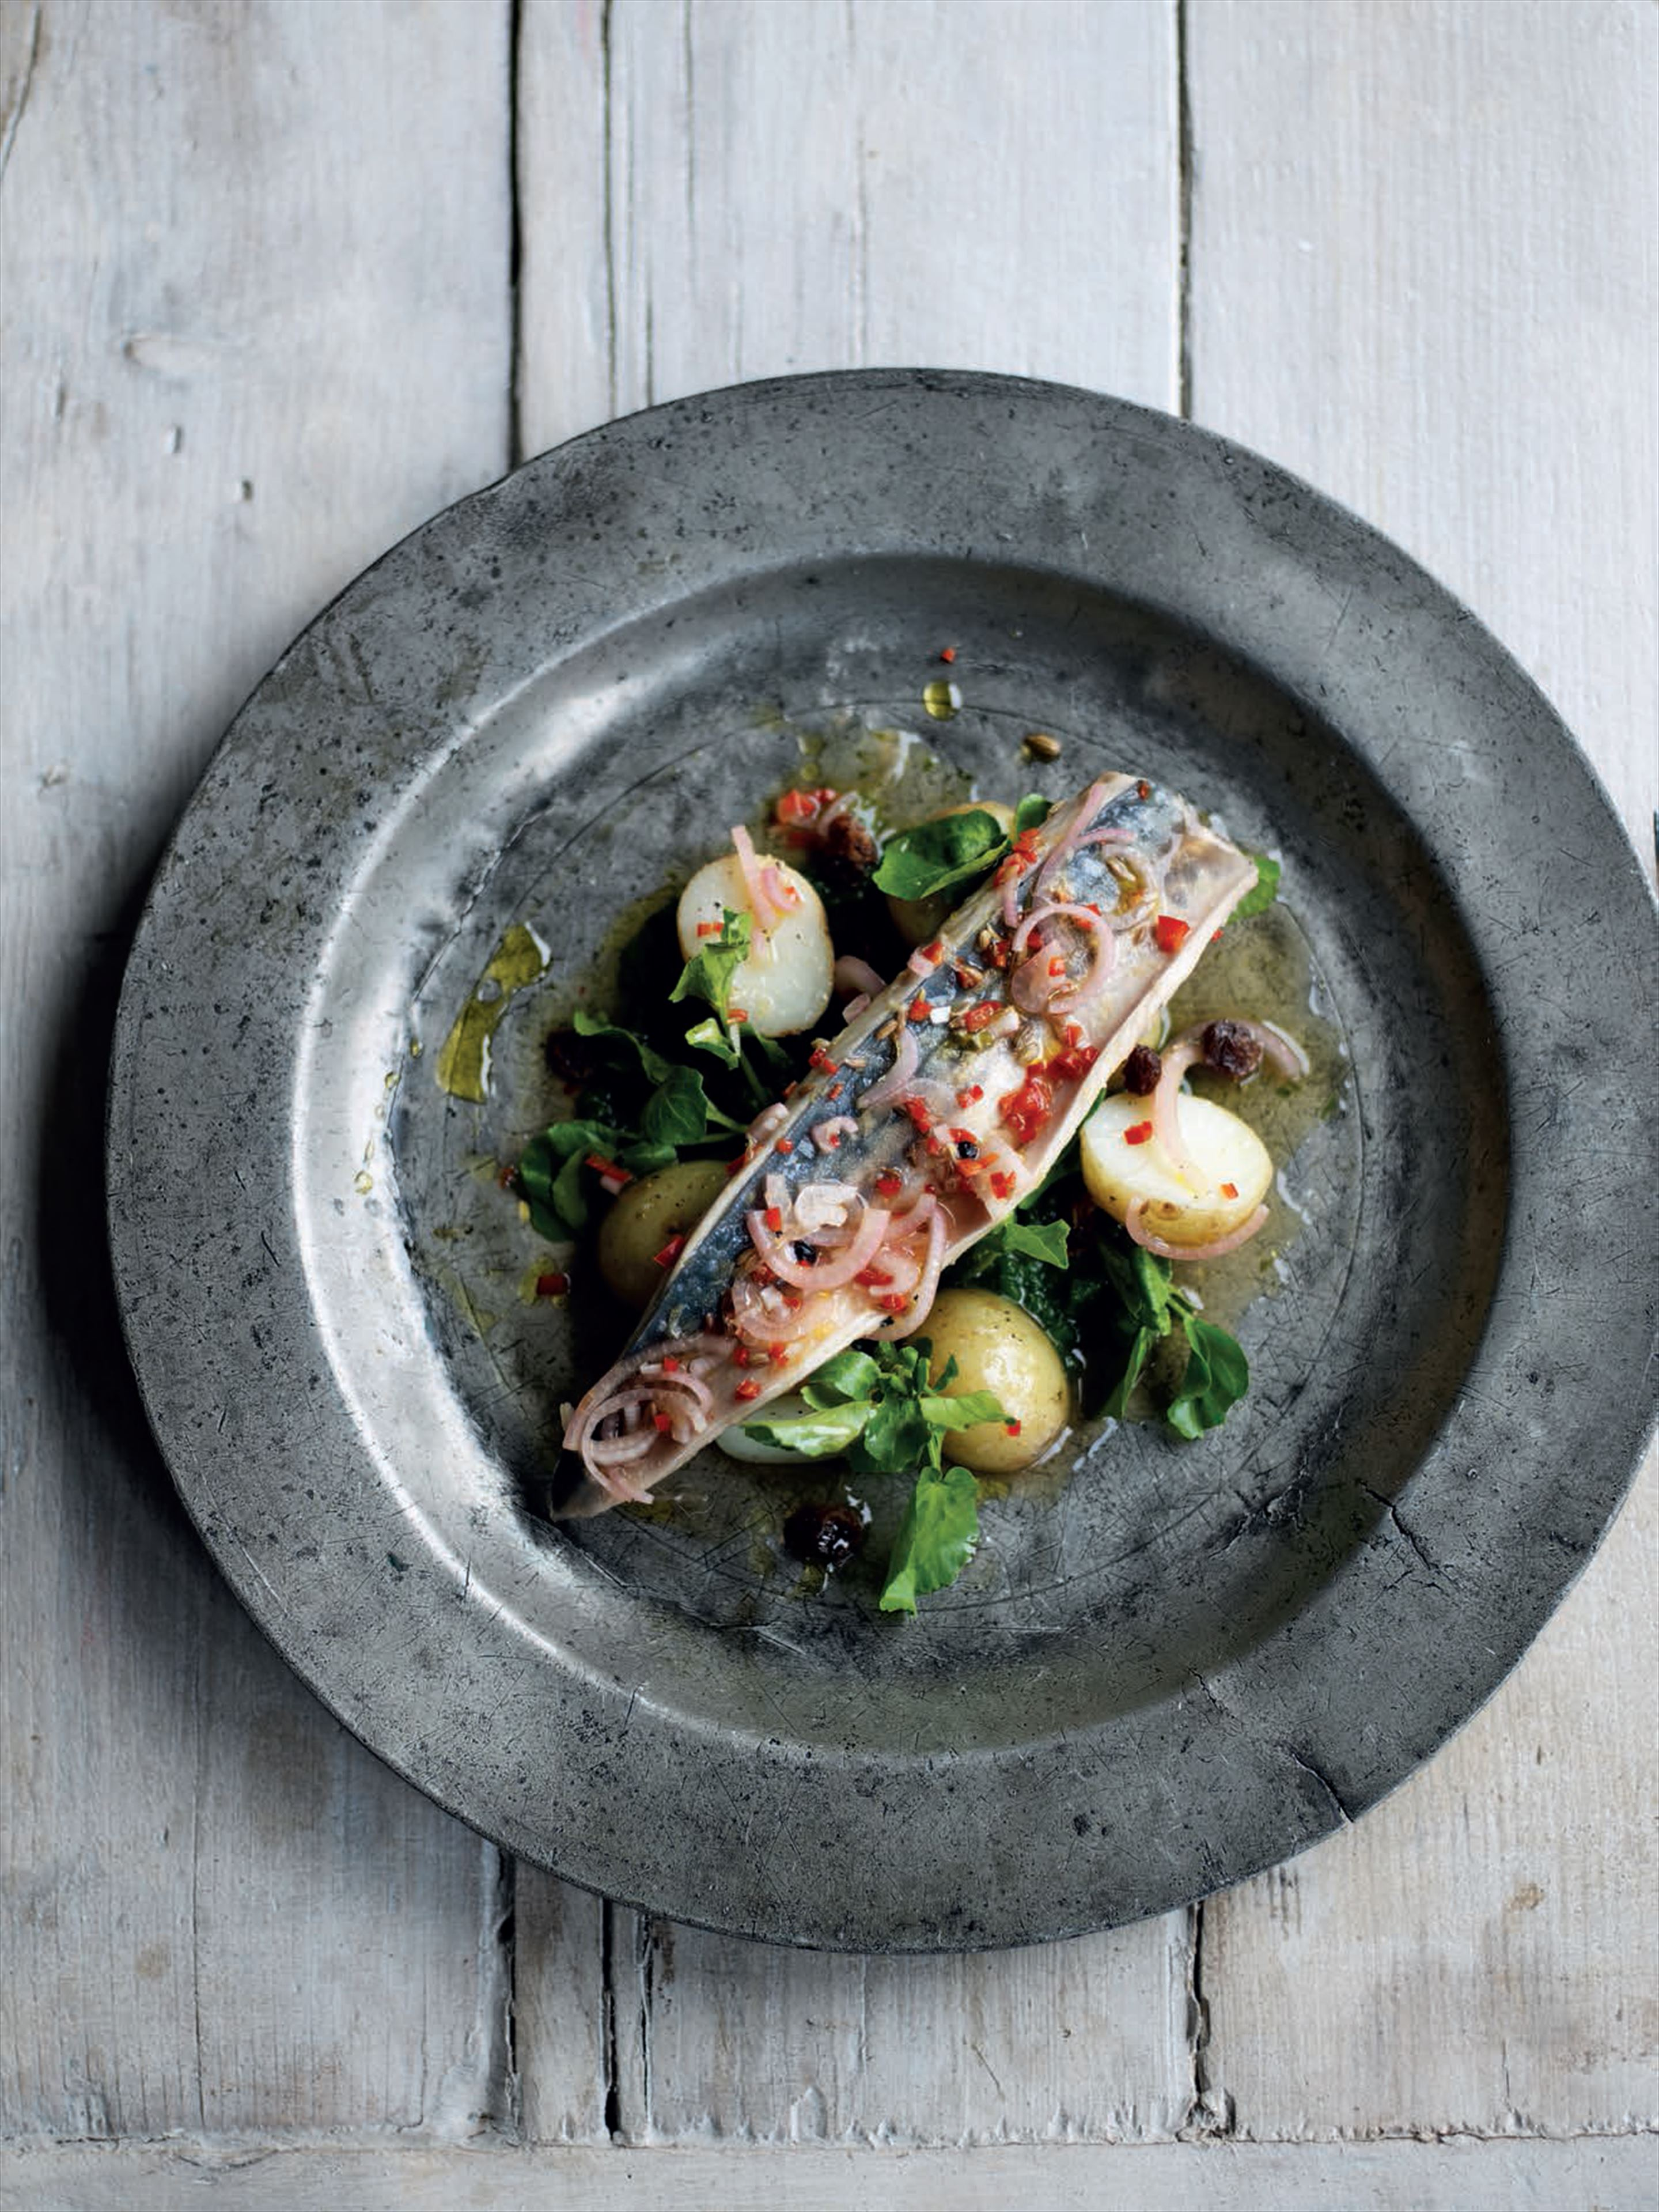 Pickled mackerel with potatoes and watercress